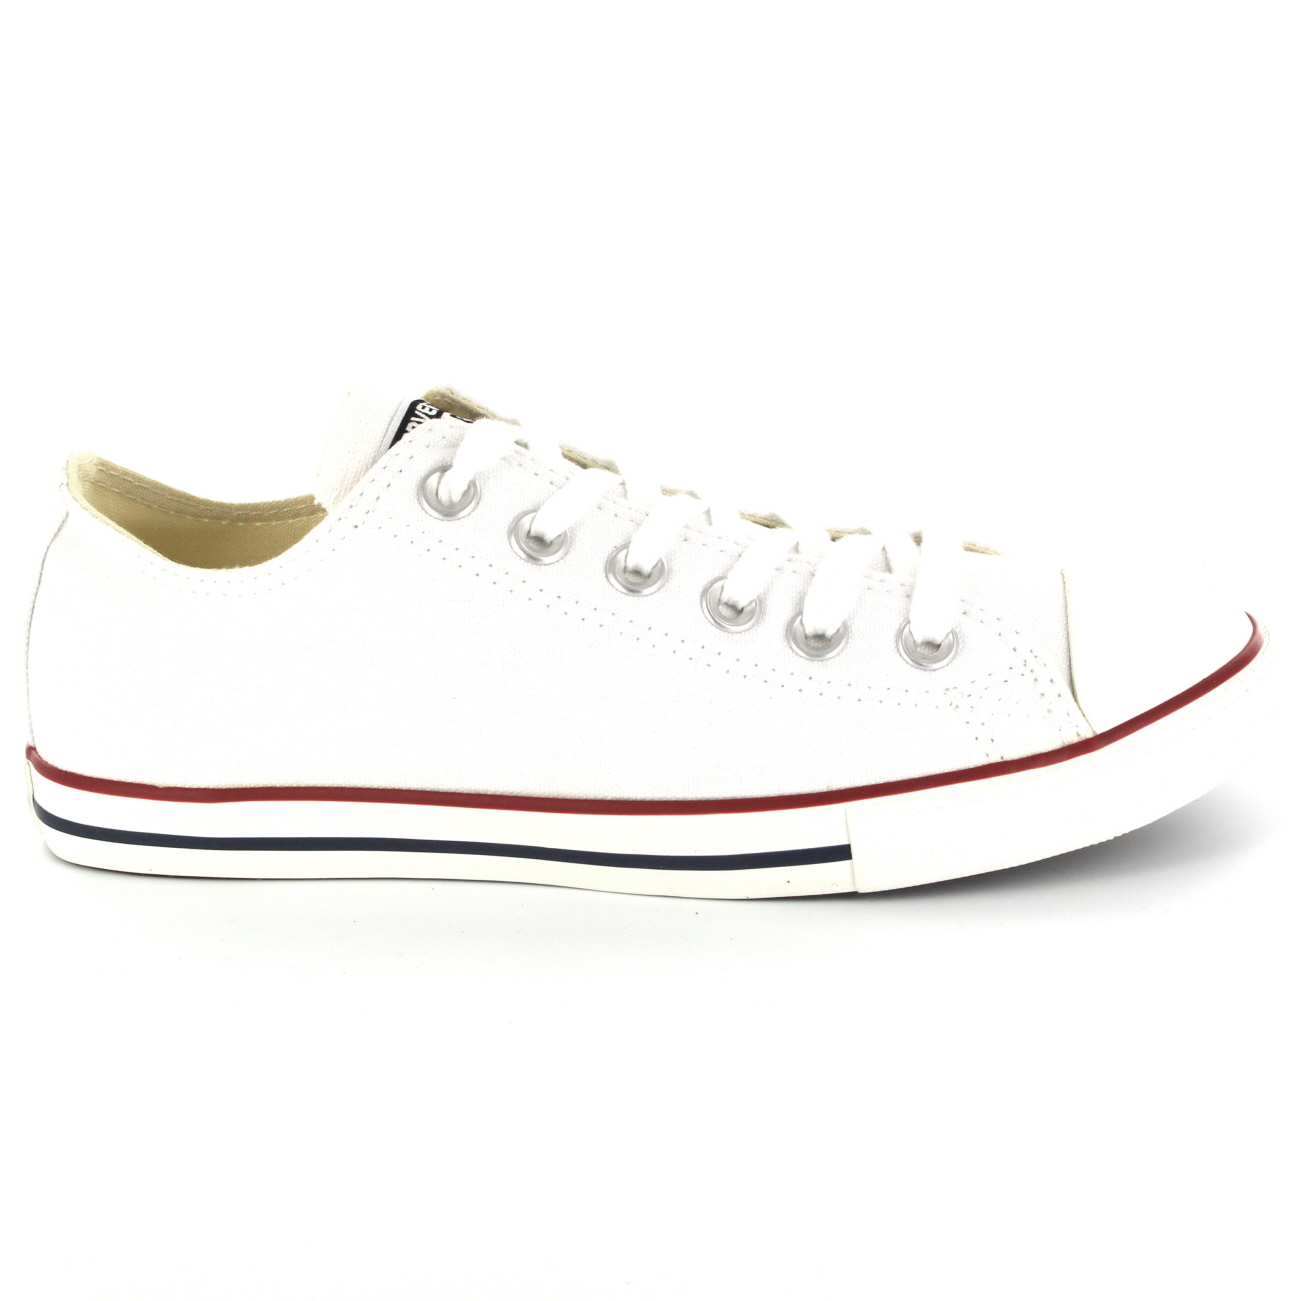 Converse Chuck Taylor All Star Lean Leather Ox Shoes